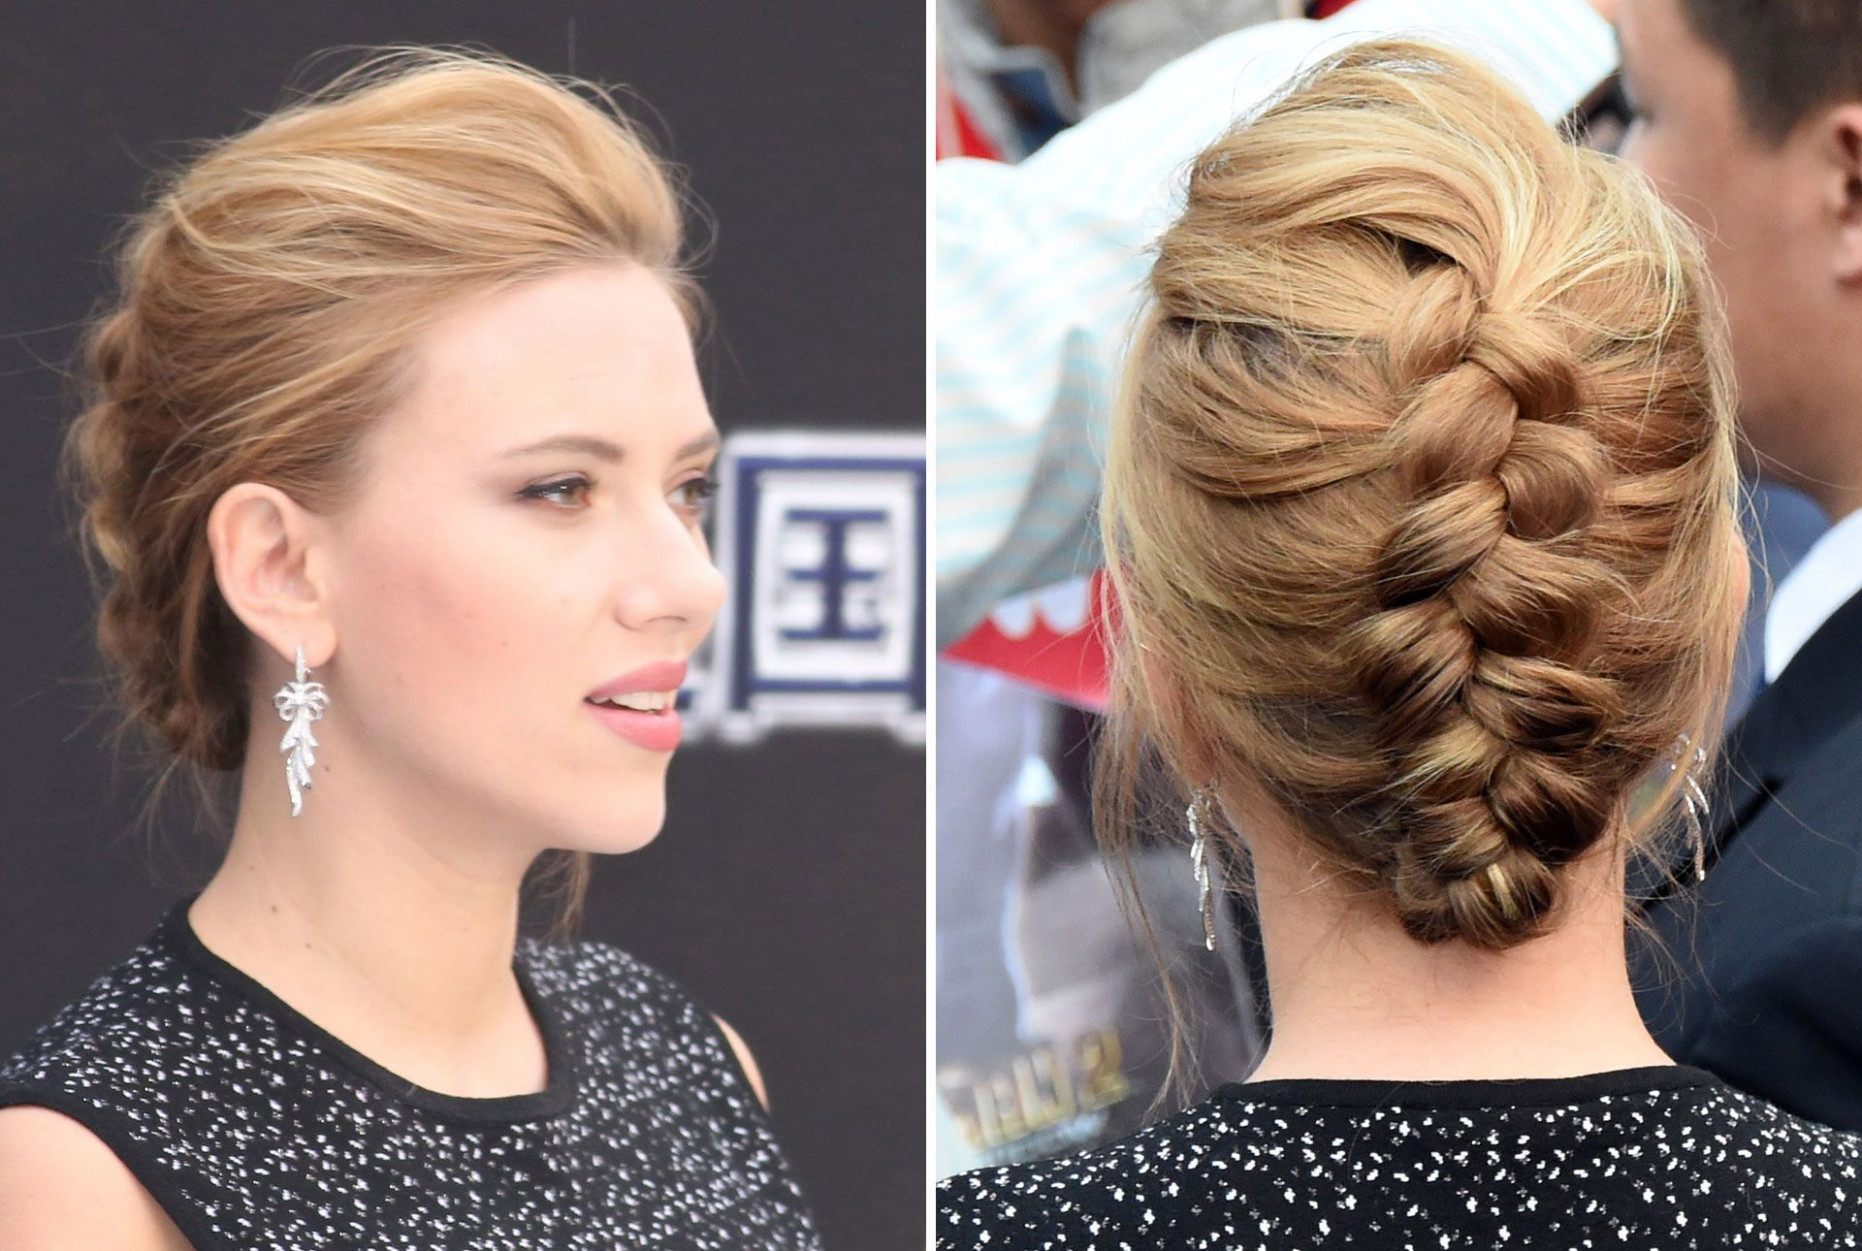 11 Easy Wedding Guest Hairstyles - Best Hair Ideas for Wedding Guests